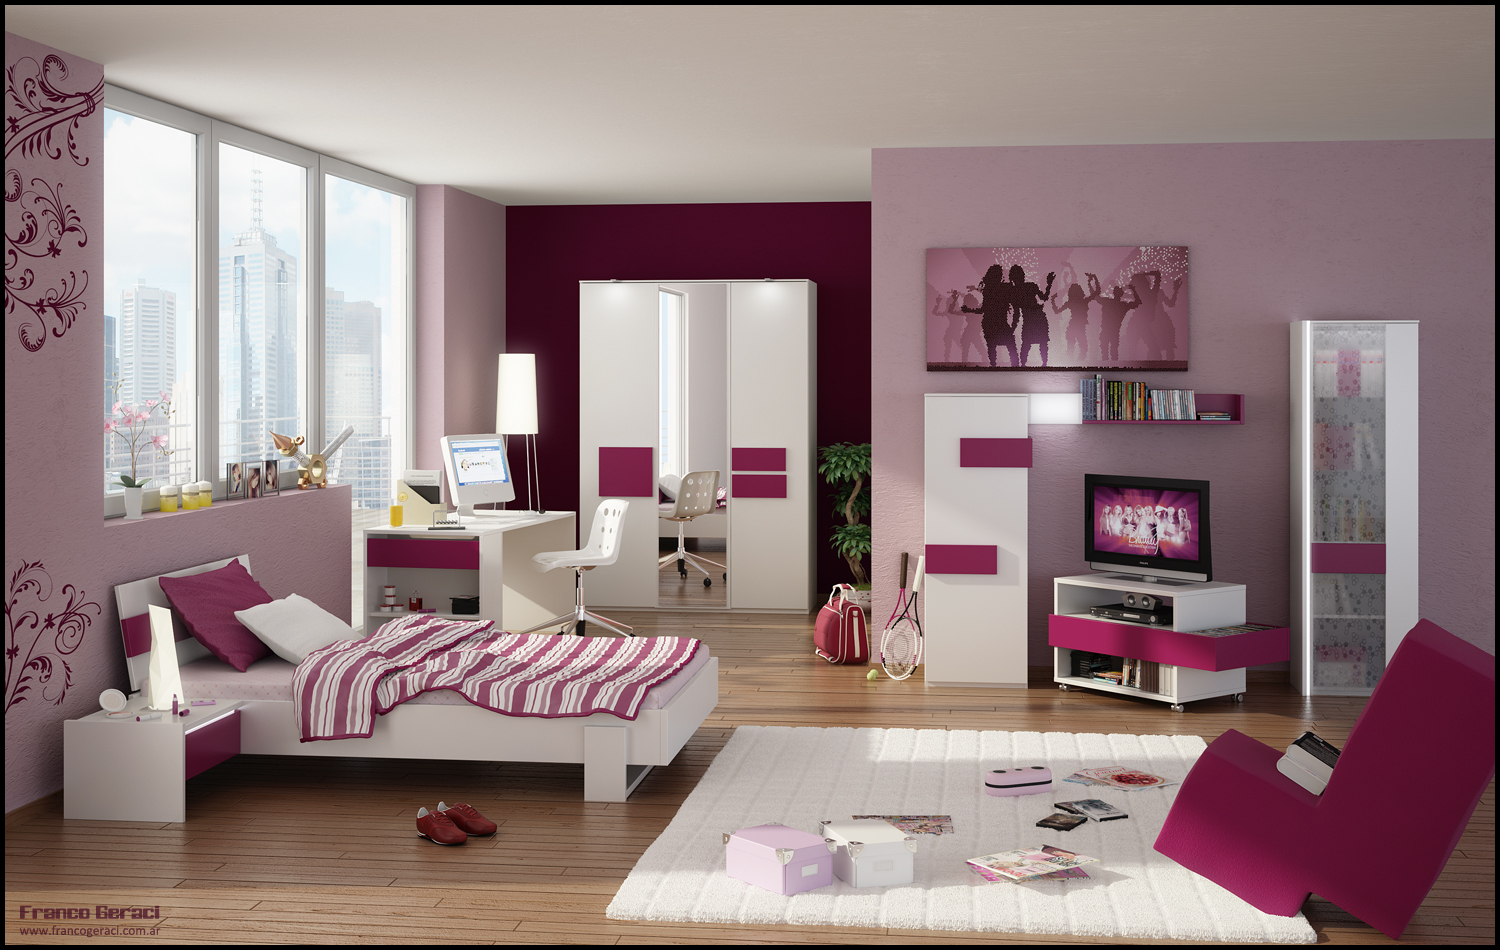 3dteen room byFEG Bedroom Designs For Teenage Girls